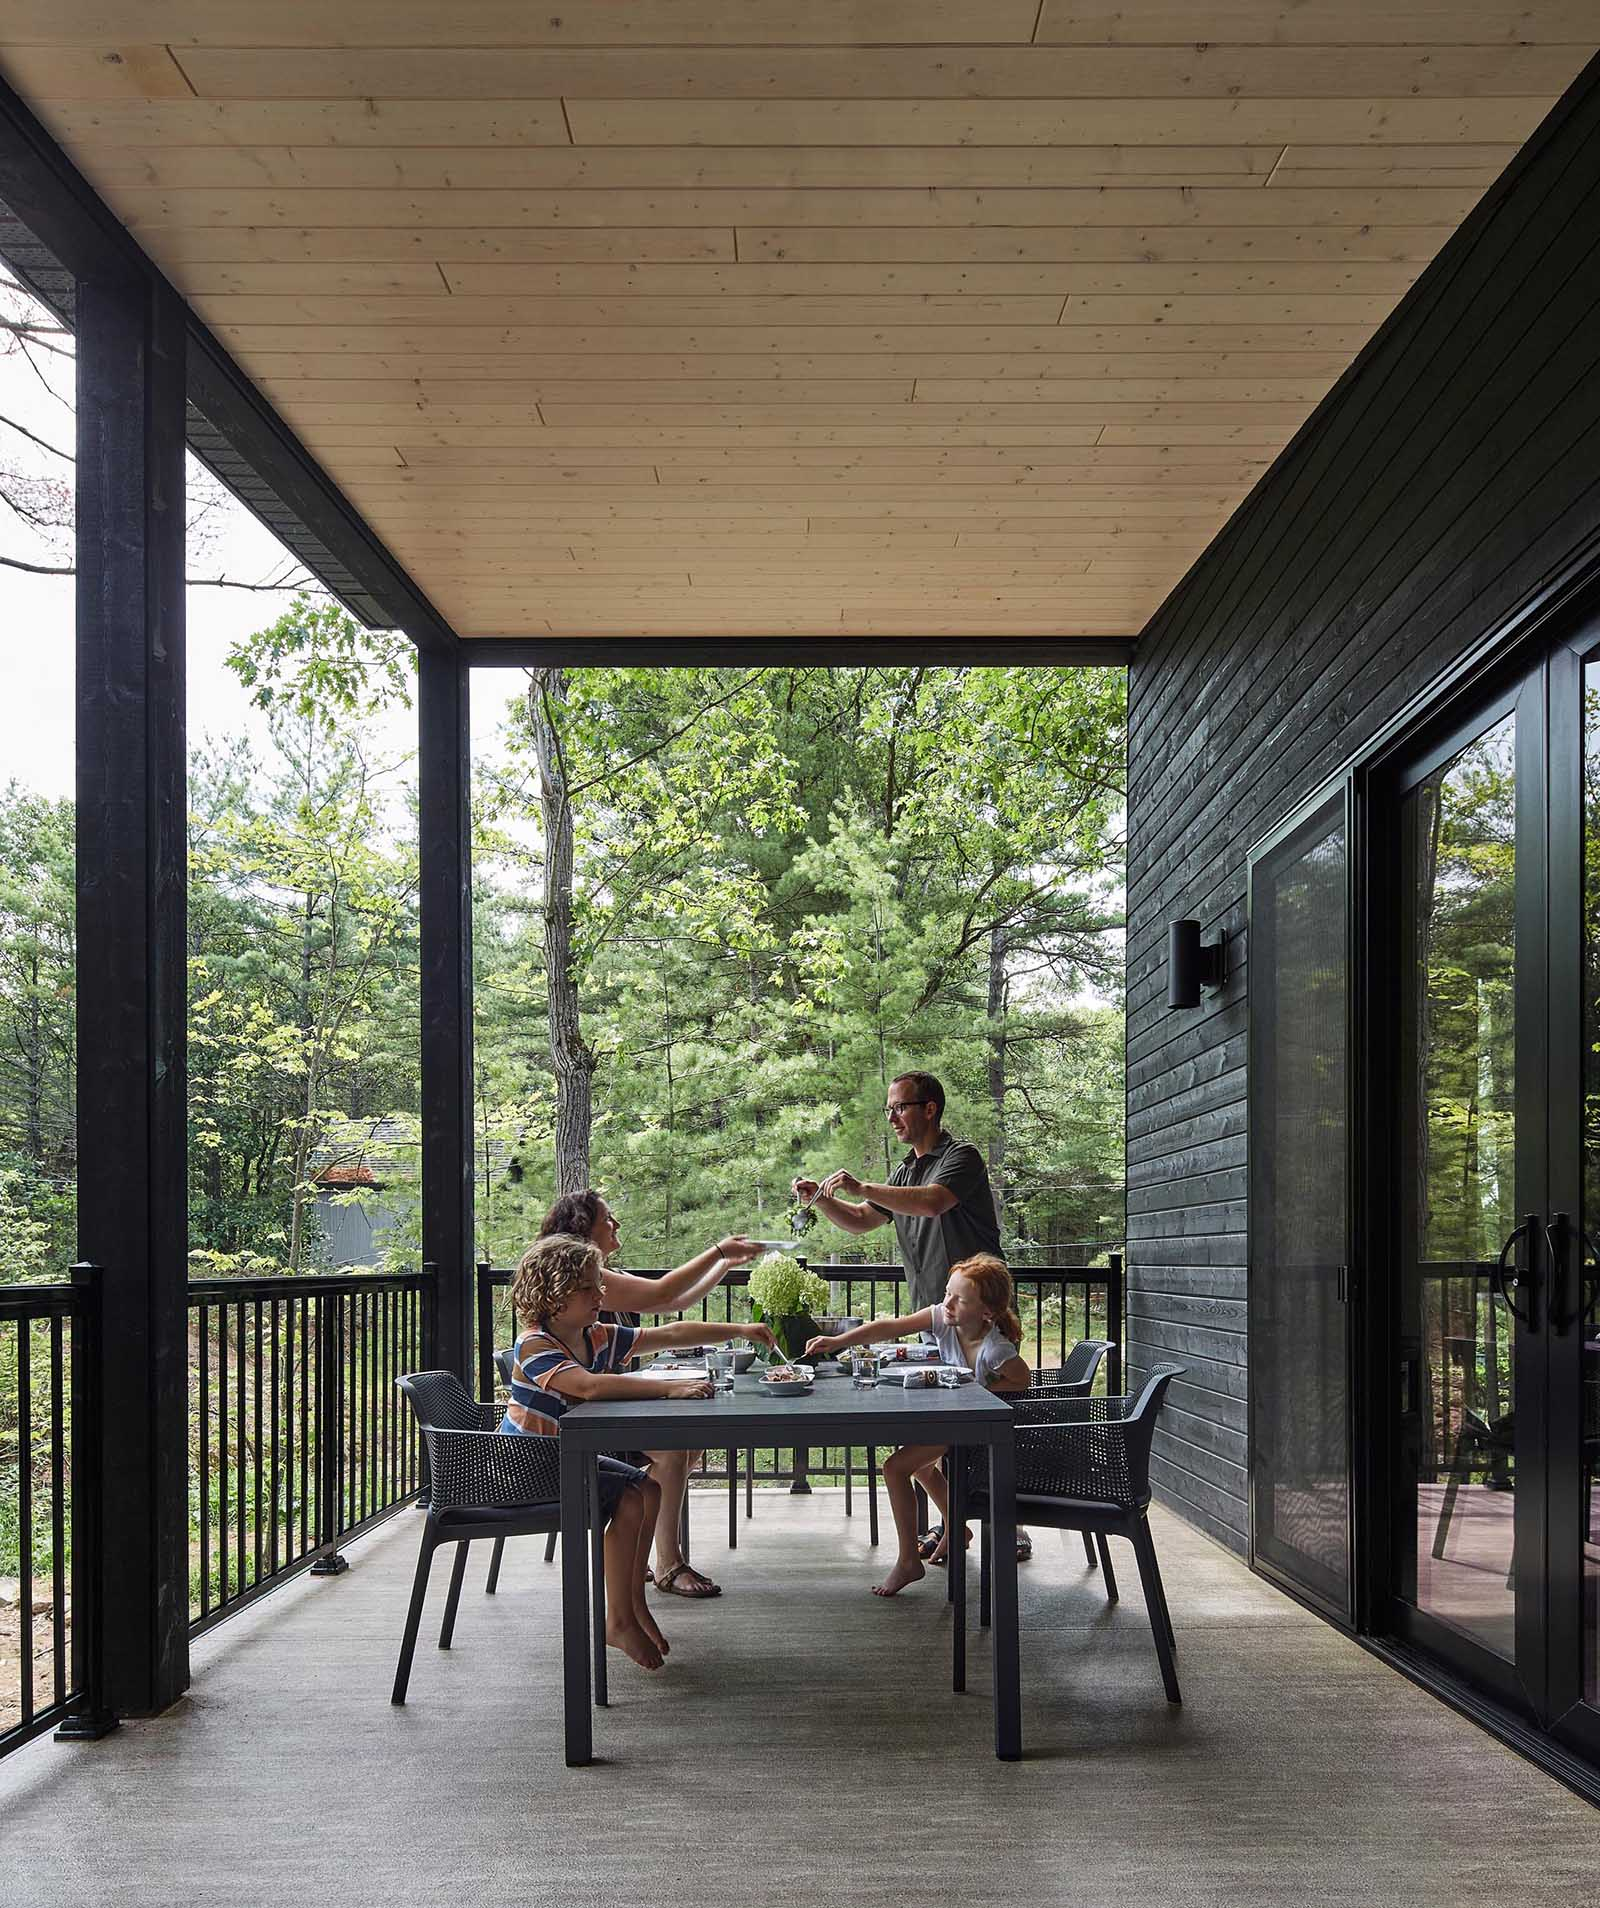 A modern cottage with a covered outdoor dining area.